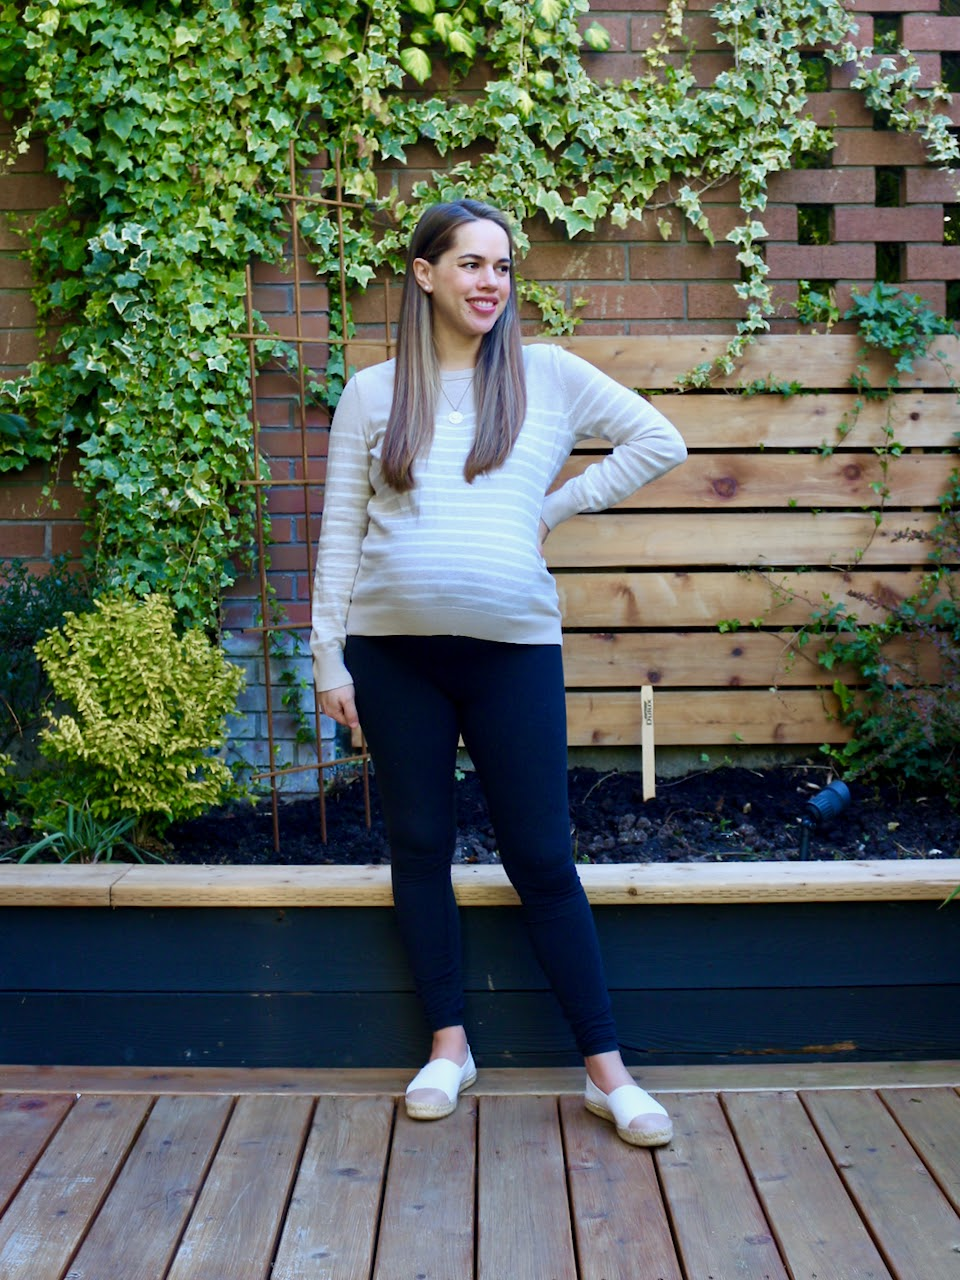 Jules in Flats - Striped Sweater + Leggings WFH Outfit (Business Casual Workwear on a Budget)